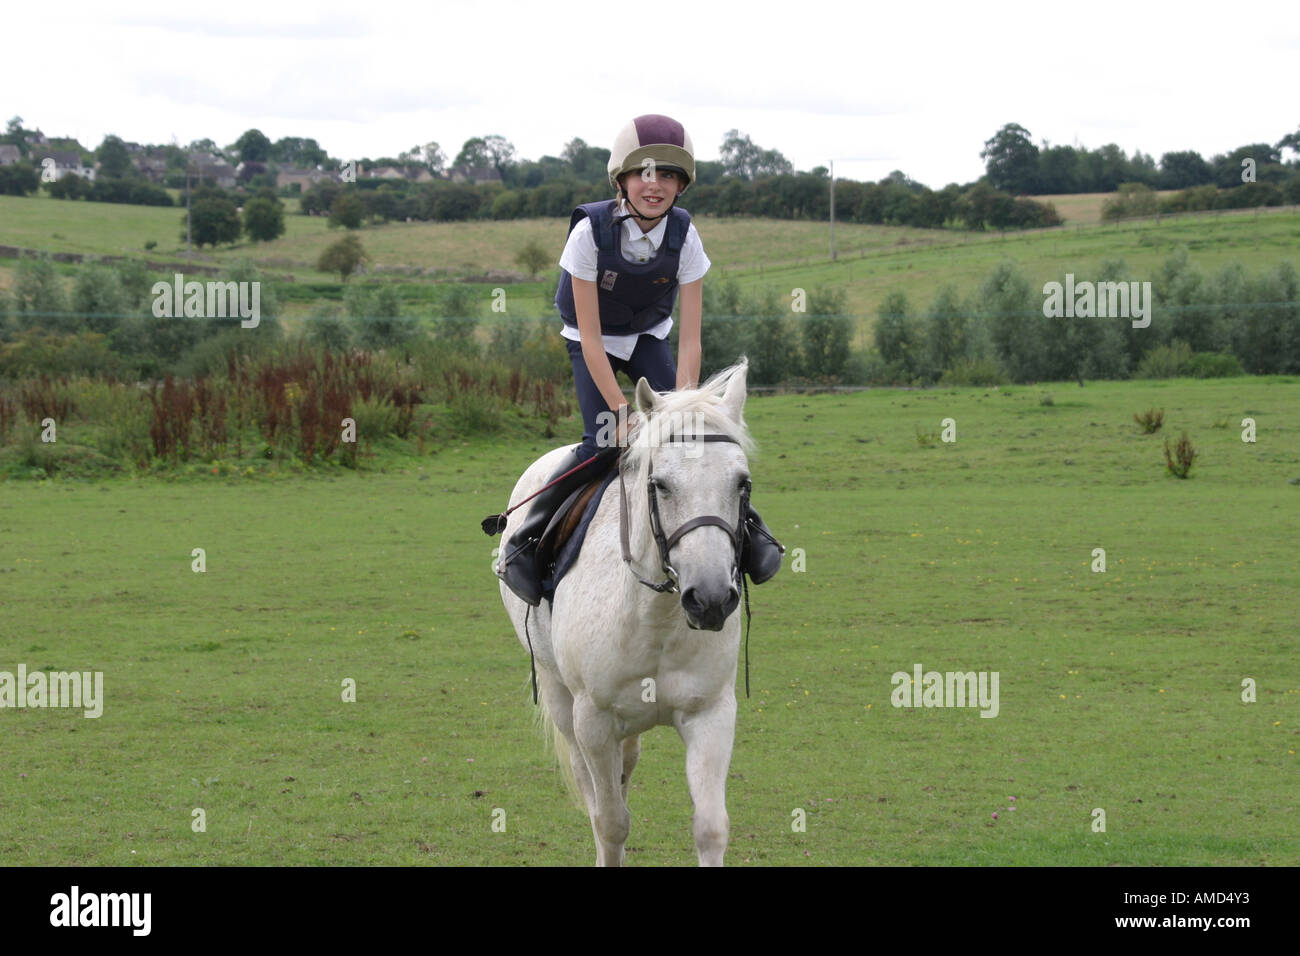 A young rider high in her saddle riding her pony. - Stock Image